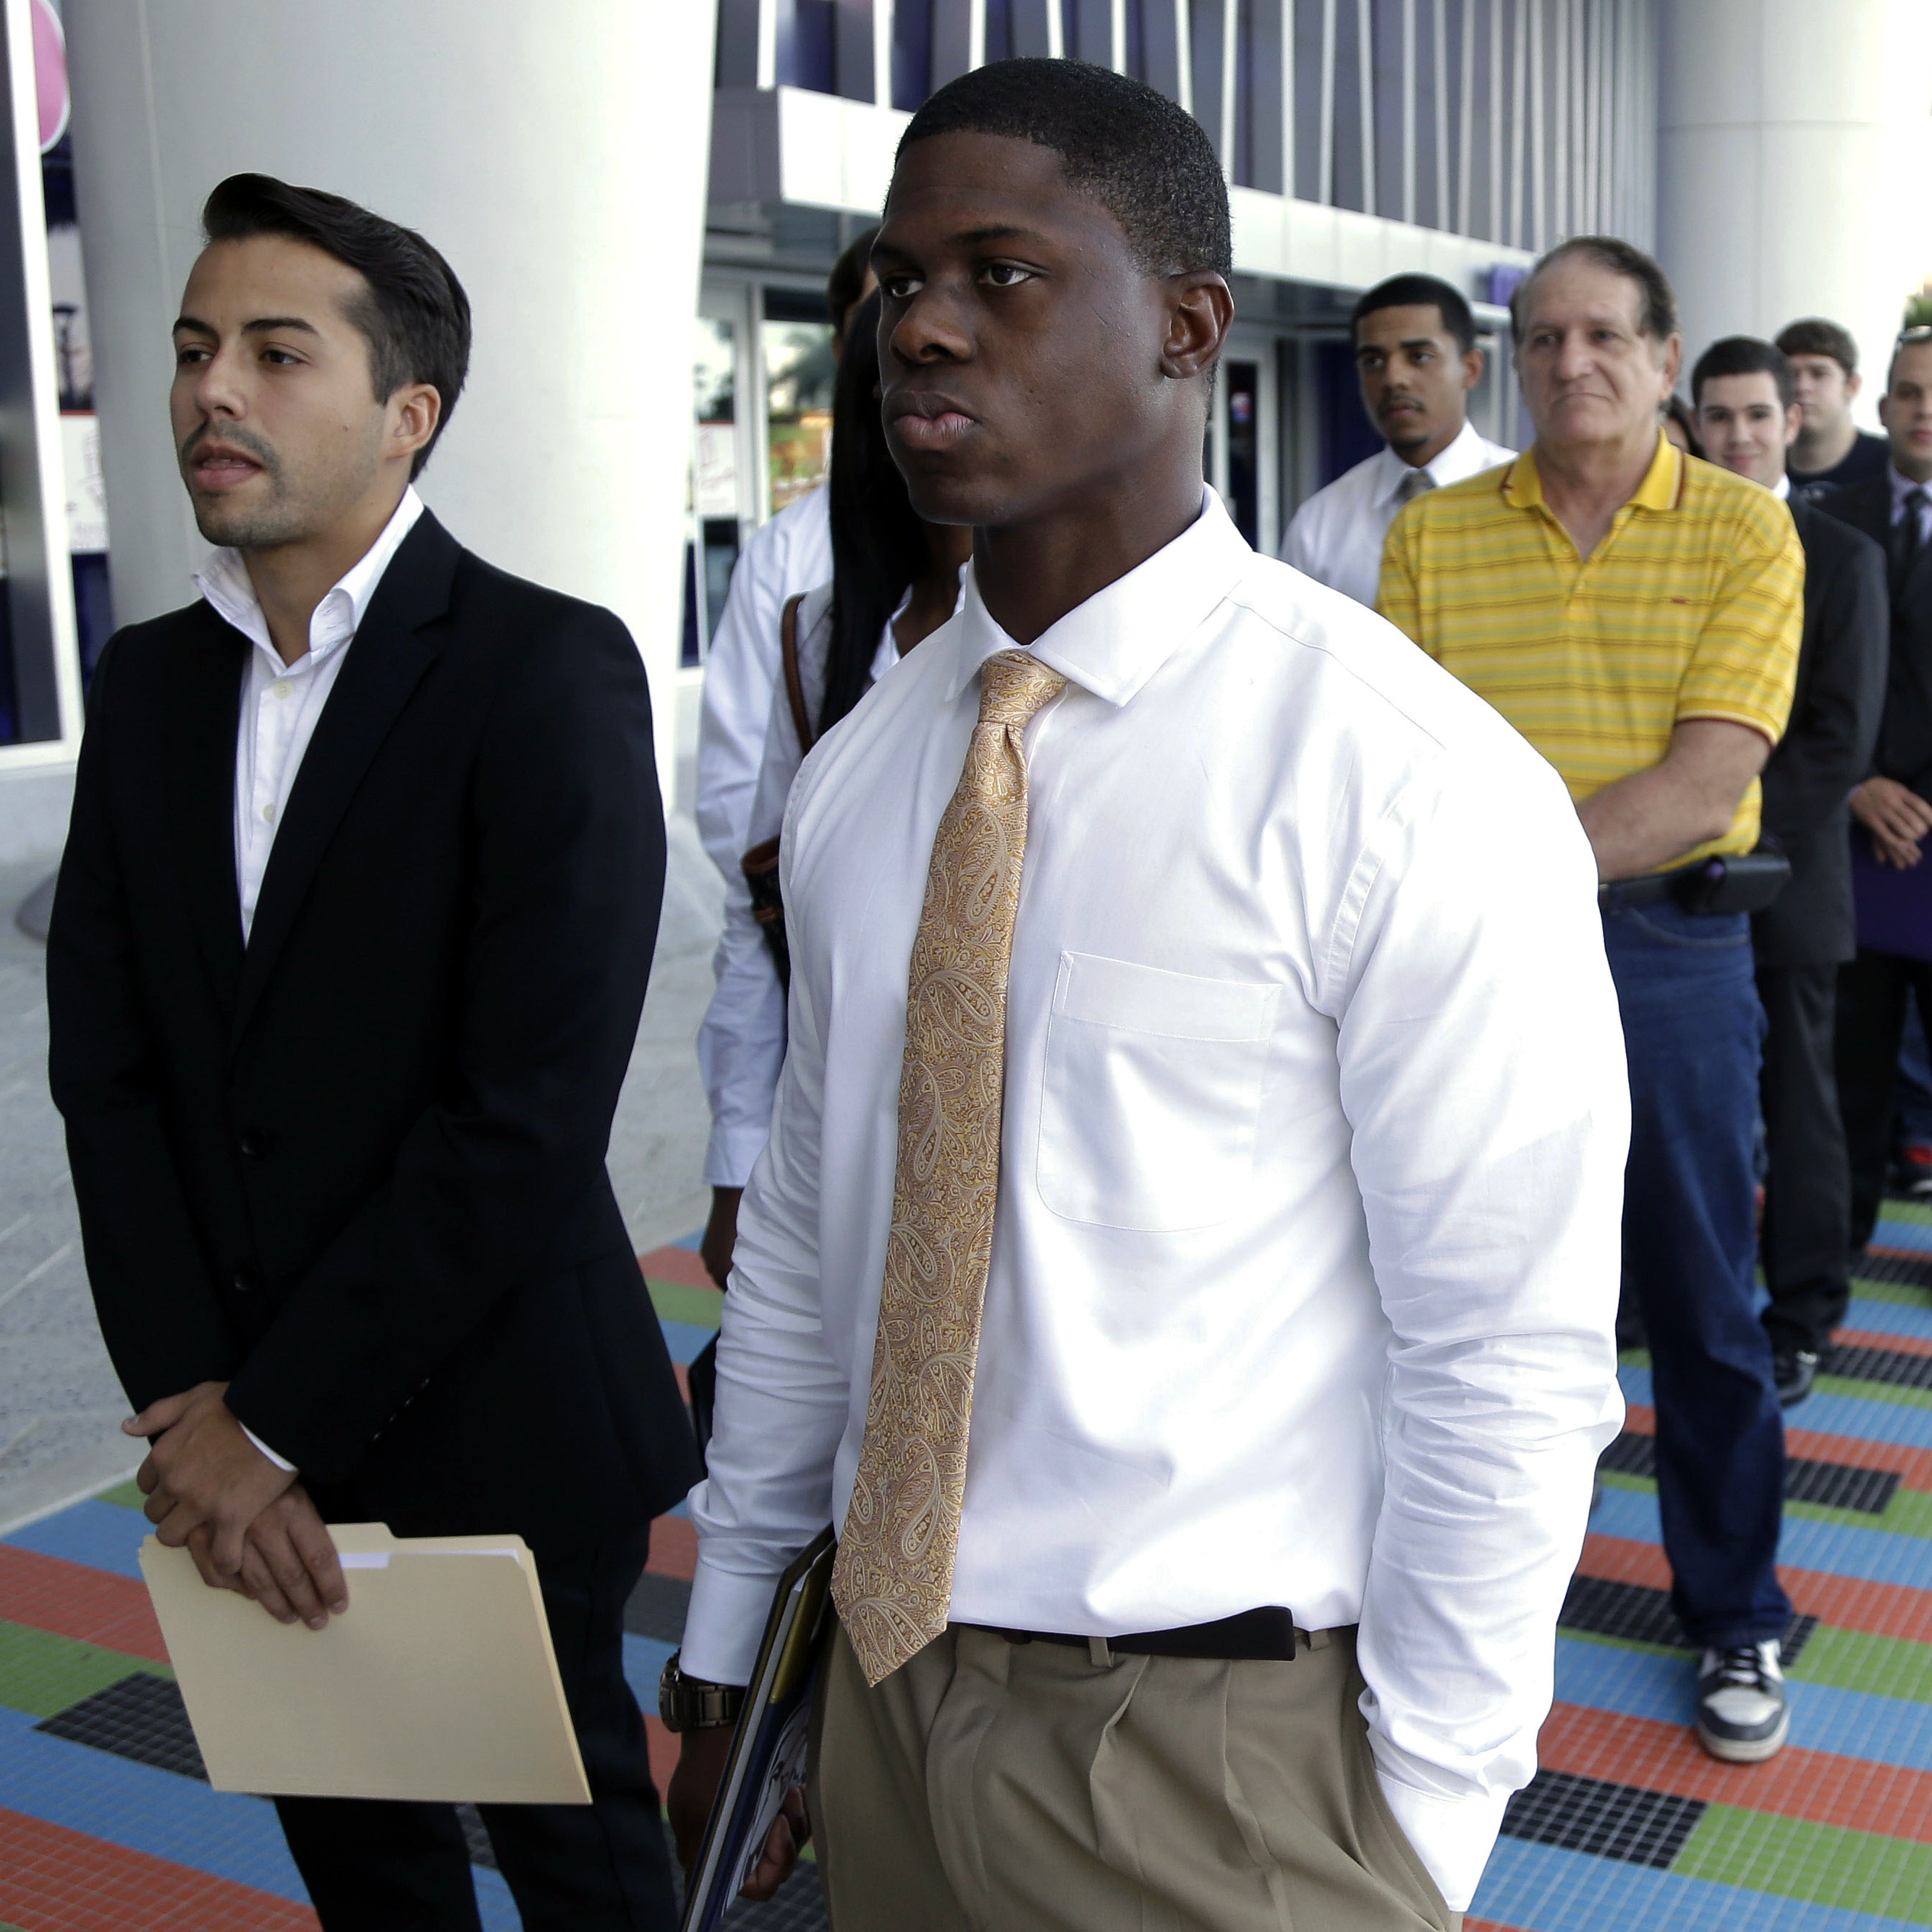 Luis Mendez, 23 (left), and Maurice Mike, 23, wait in line at a job fair held by the Miami Marlins at Marlins Park on Oct. 23, 2013. The nation's unemployment rate slipped to 6.6 percent in January, but employers added only 113,000 jobs to their payrolls last month, the Bureau of Labor Statistics reported Friday.